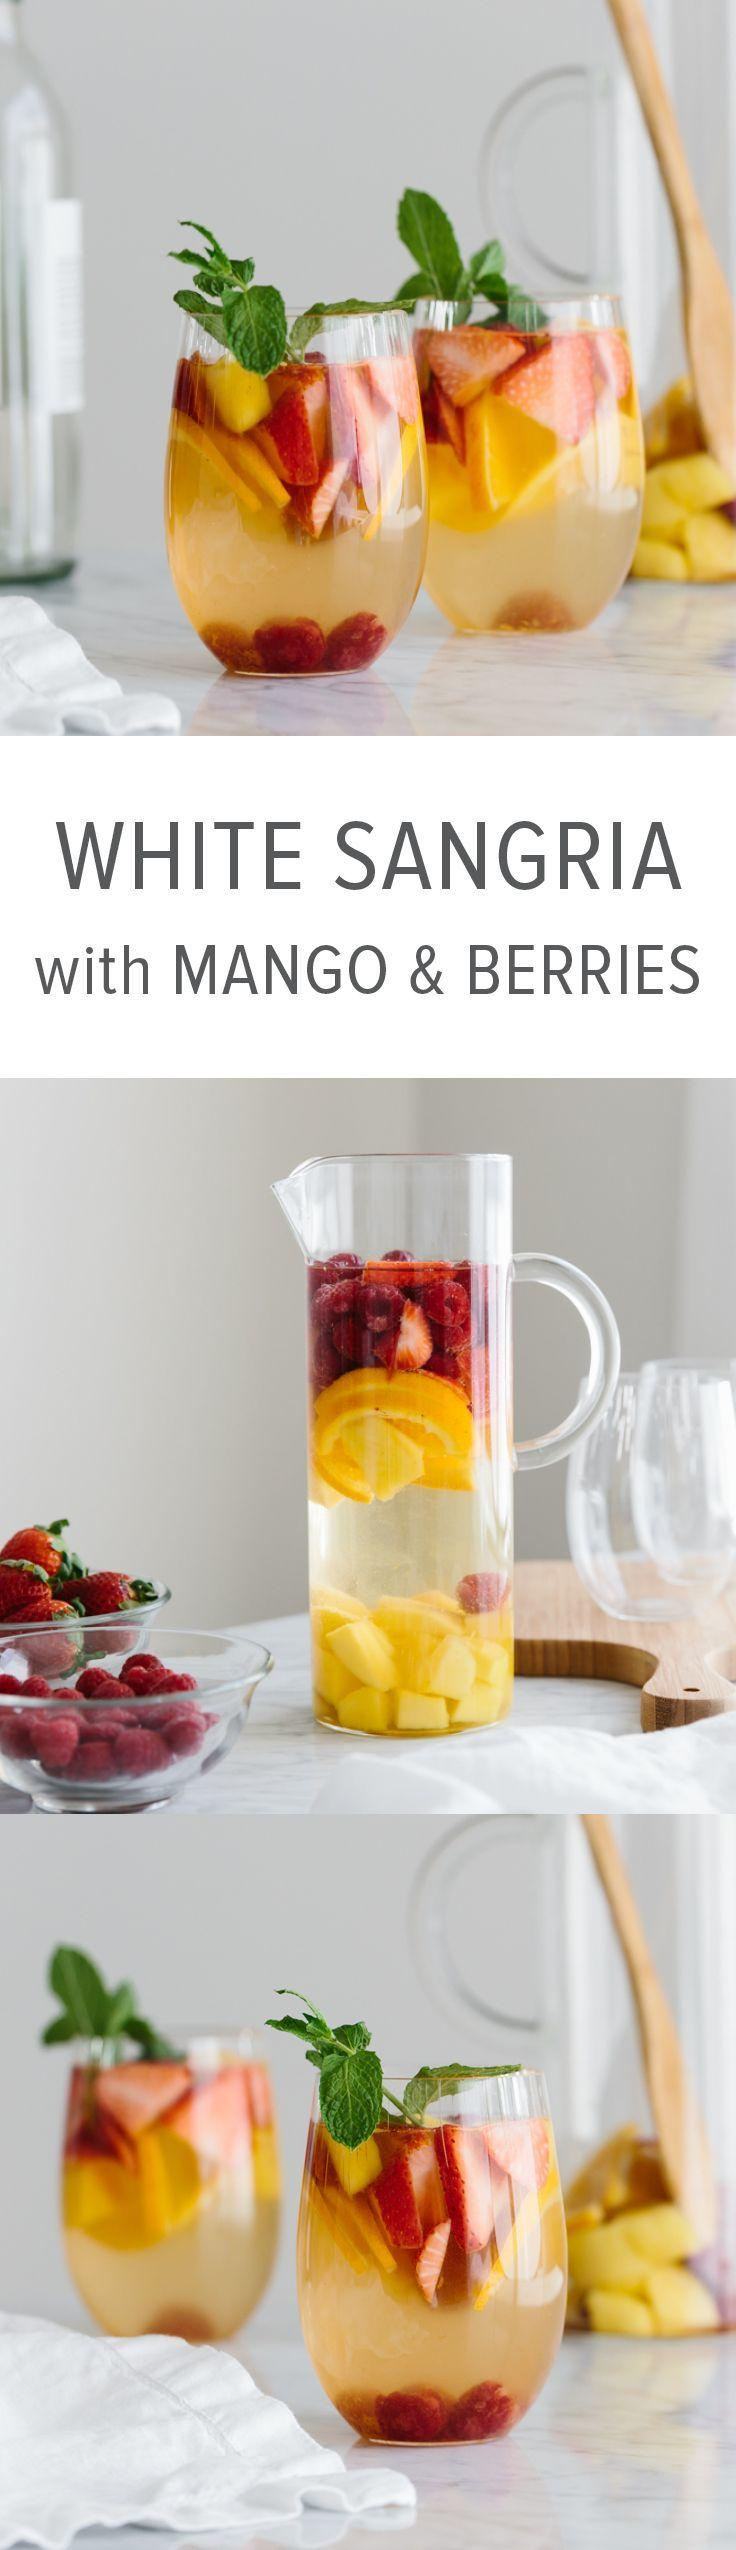 Wedding - White Sangria With Mango And Berries